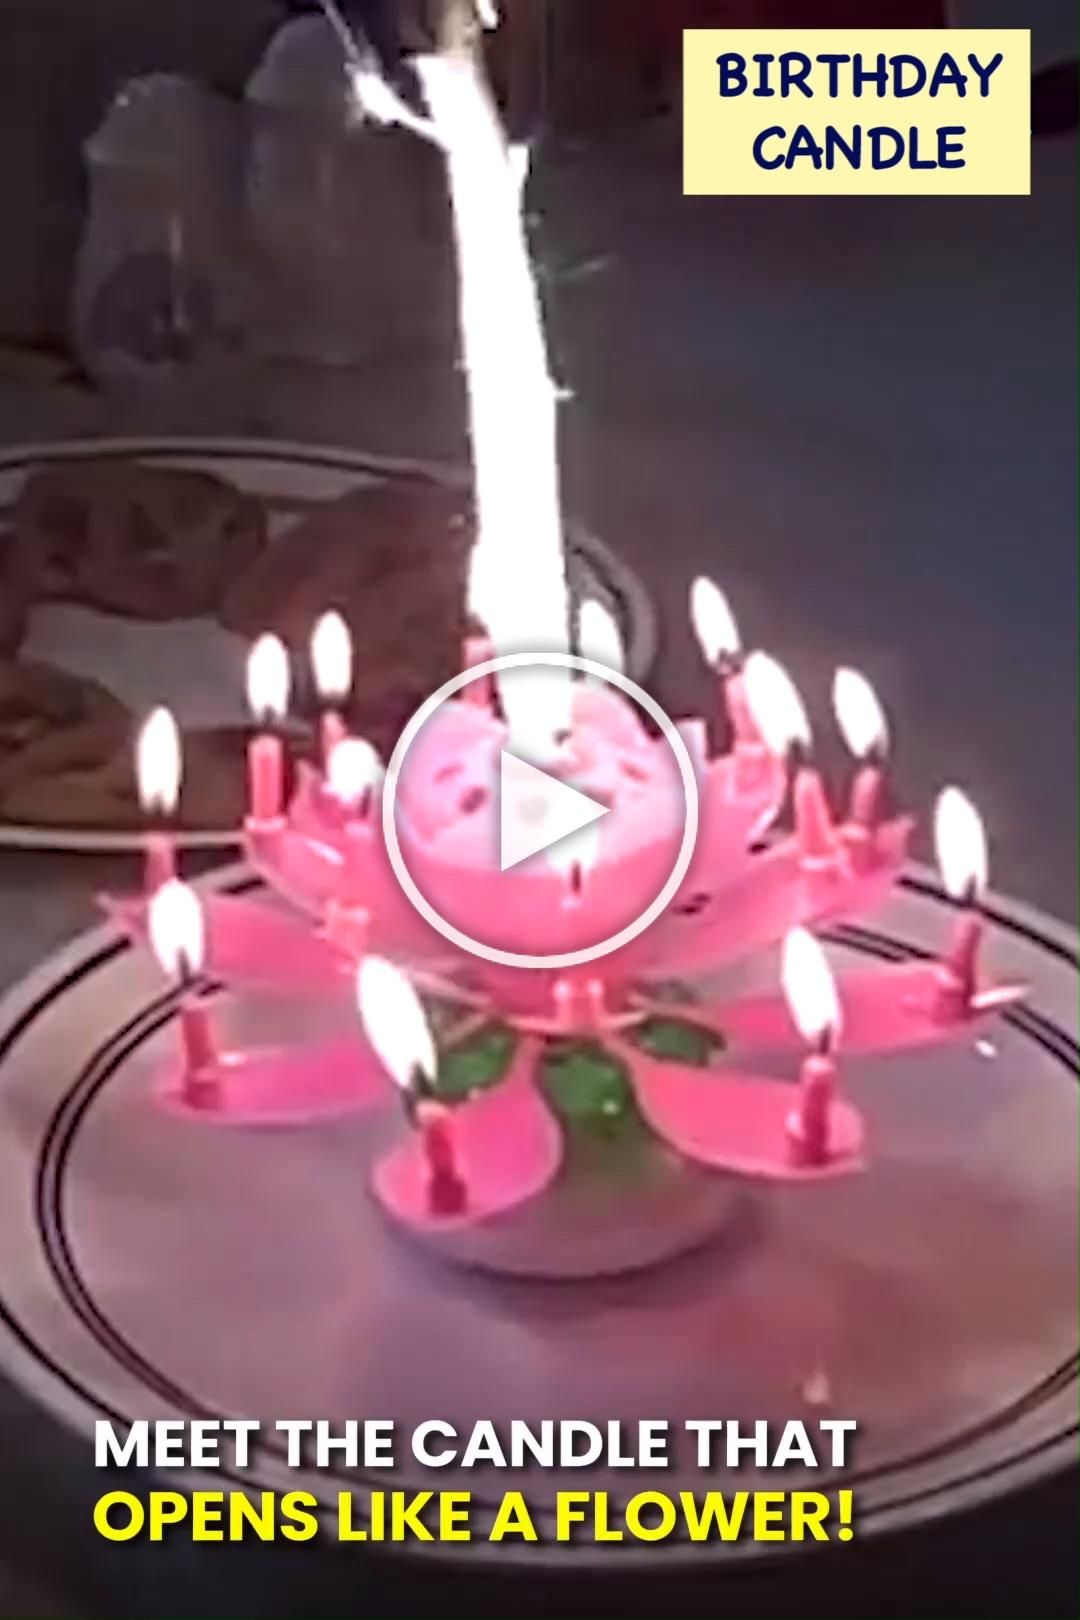 Take Your Birthday Parties To The Next Level With This Blooming Musical Candle This Amazing Lotus Flower Candl Birthday Candles Candles Birthday Songs Video